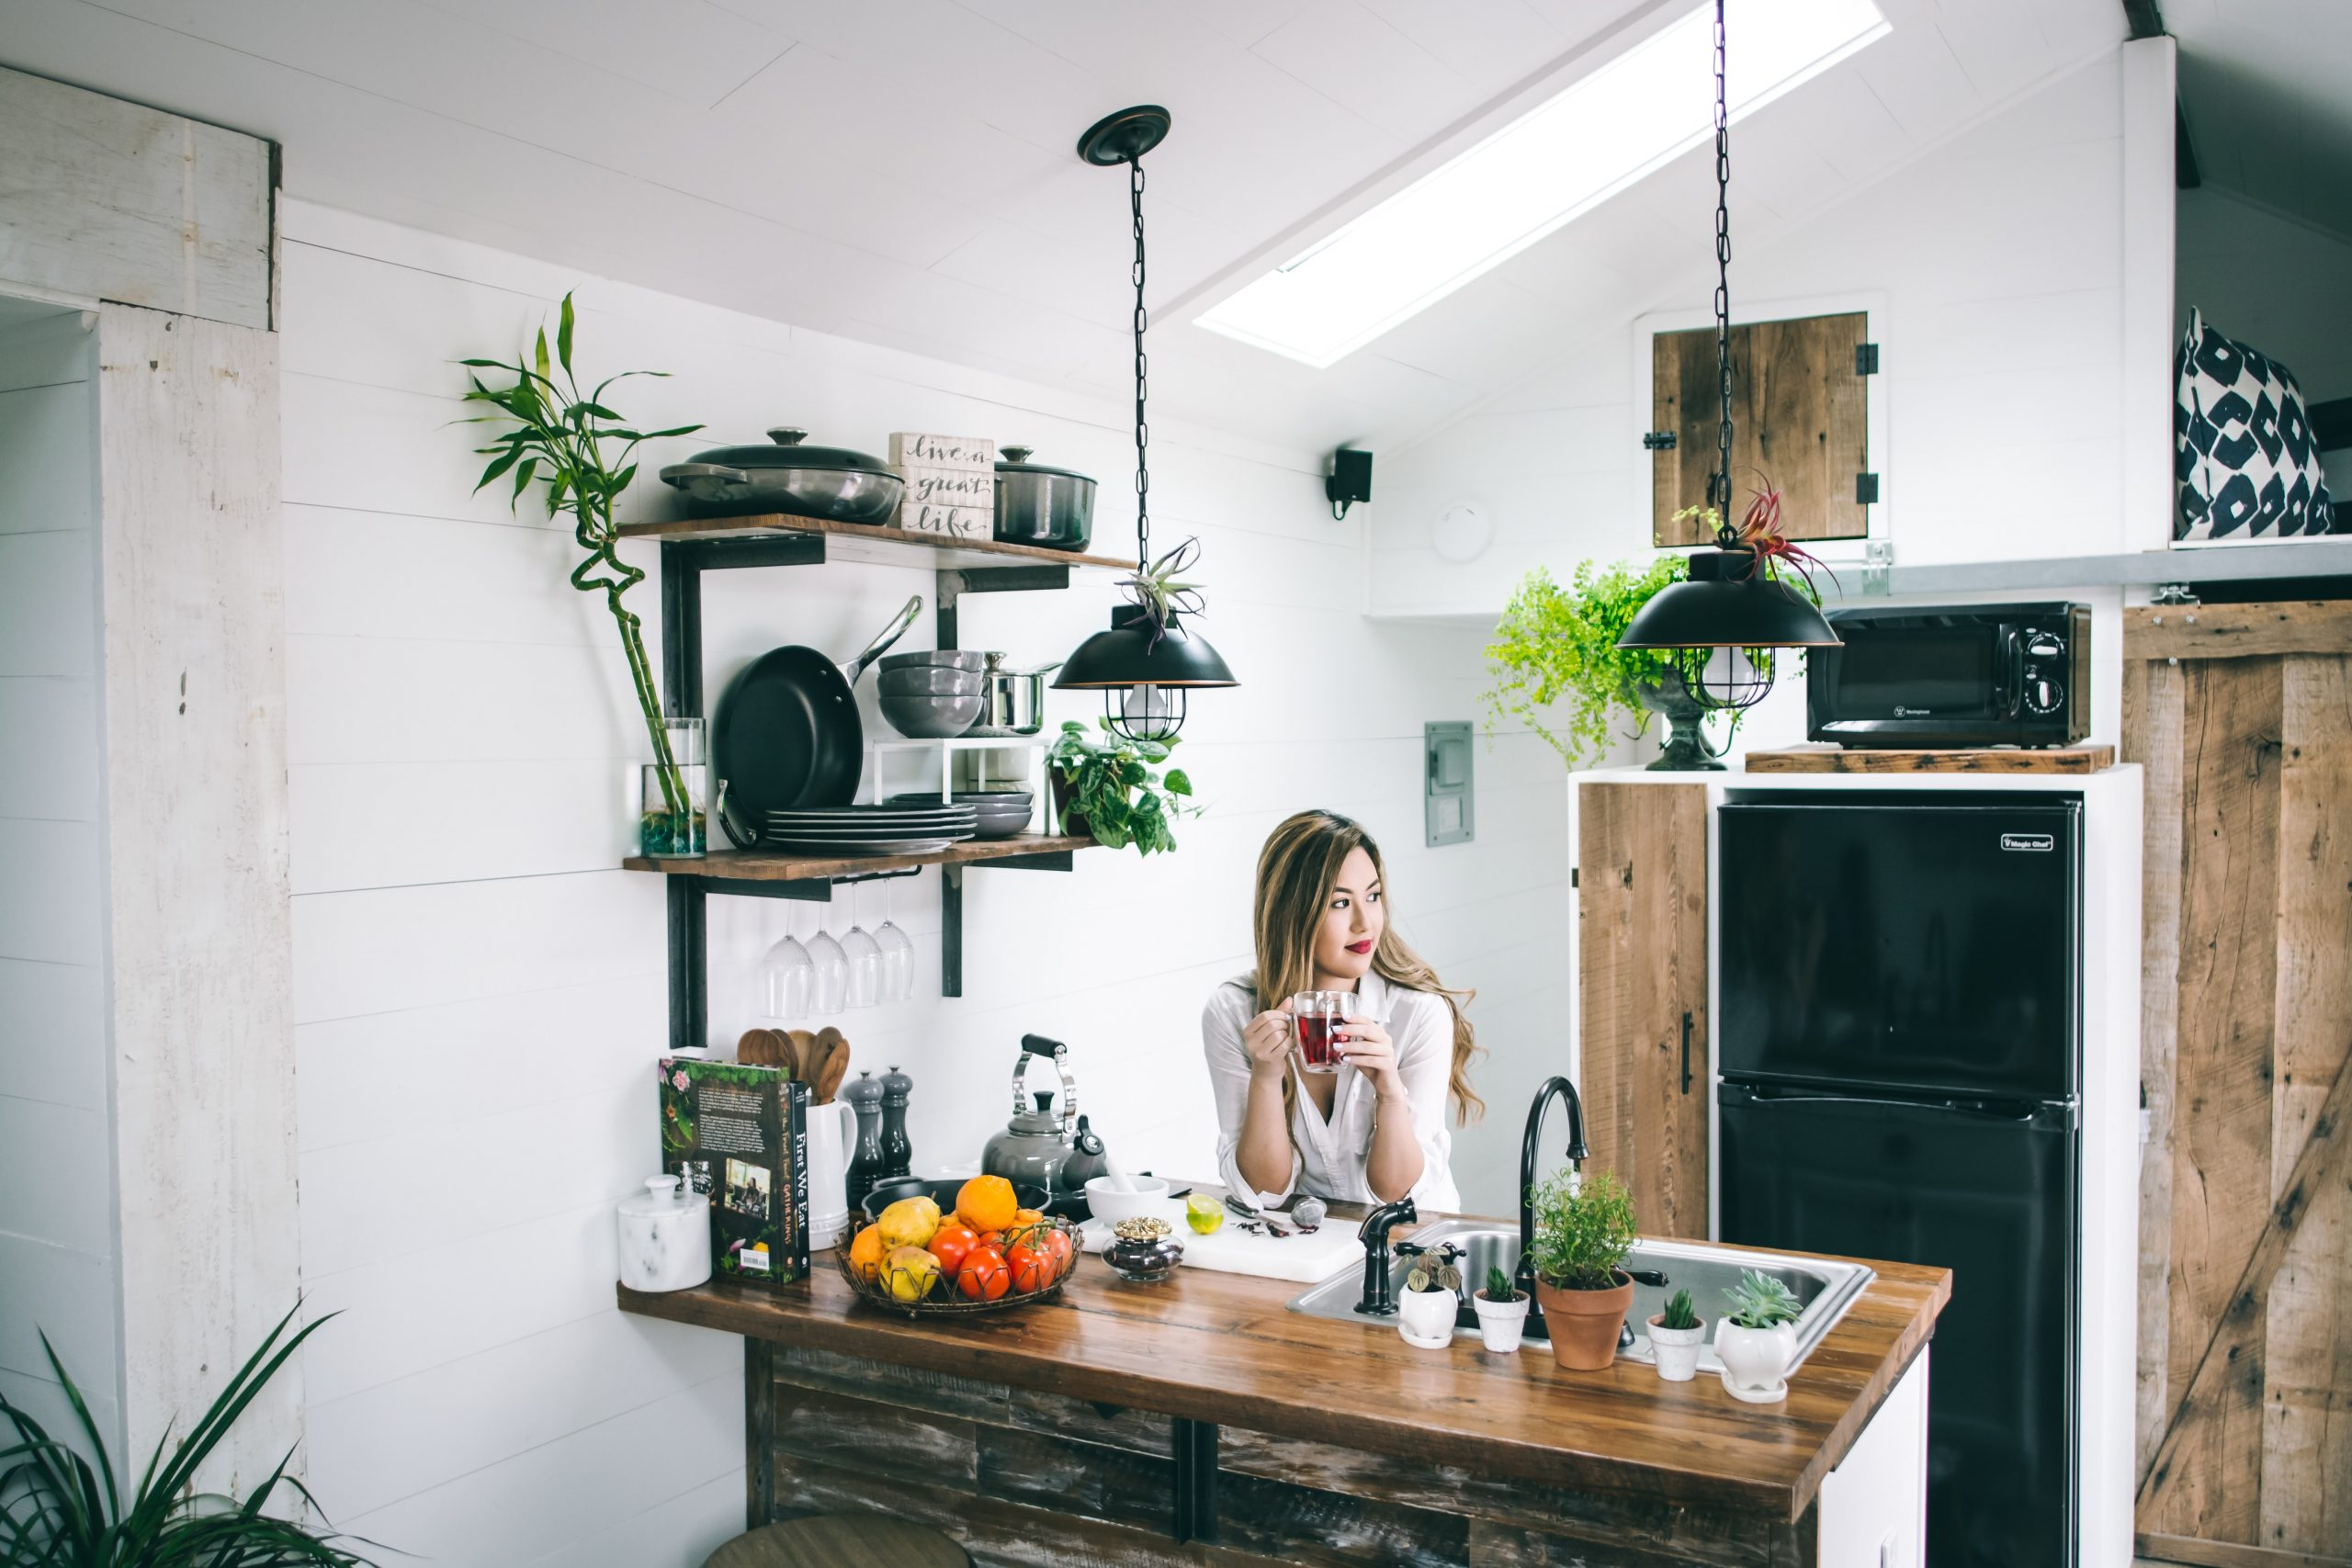 Woman sitting kitchen lights plants wooden